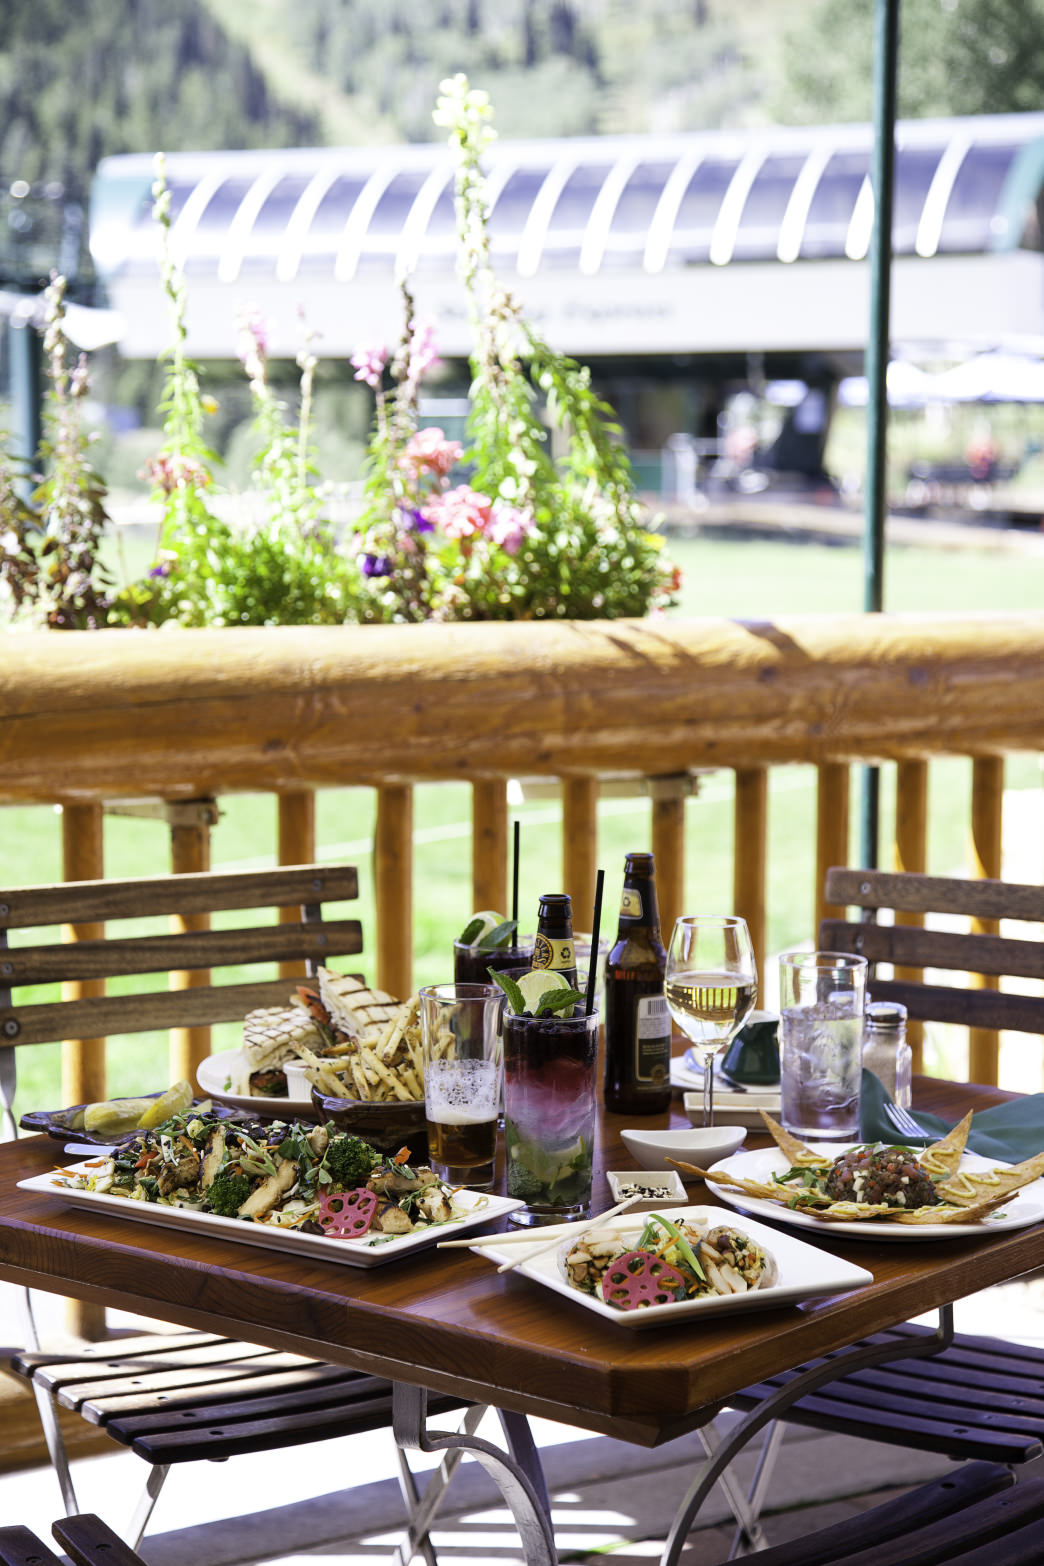 Enjoy outdoor dining at the Royal Street Café.